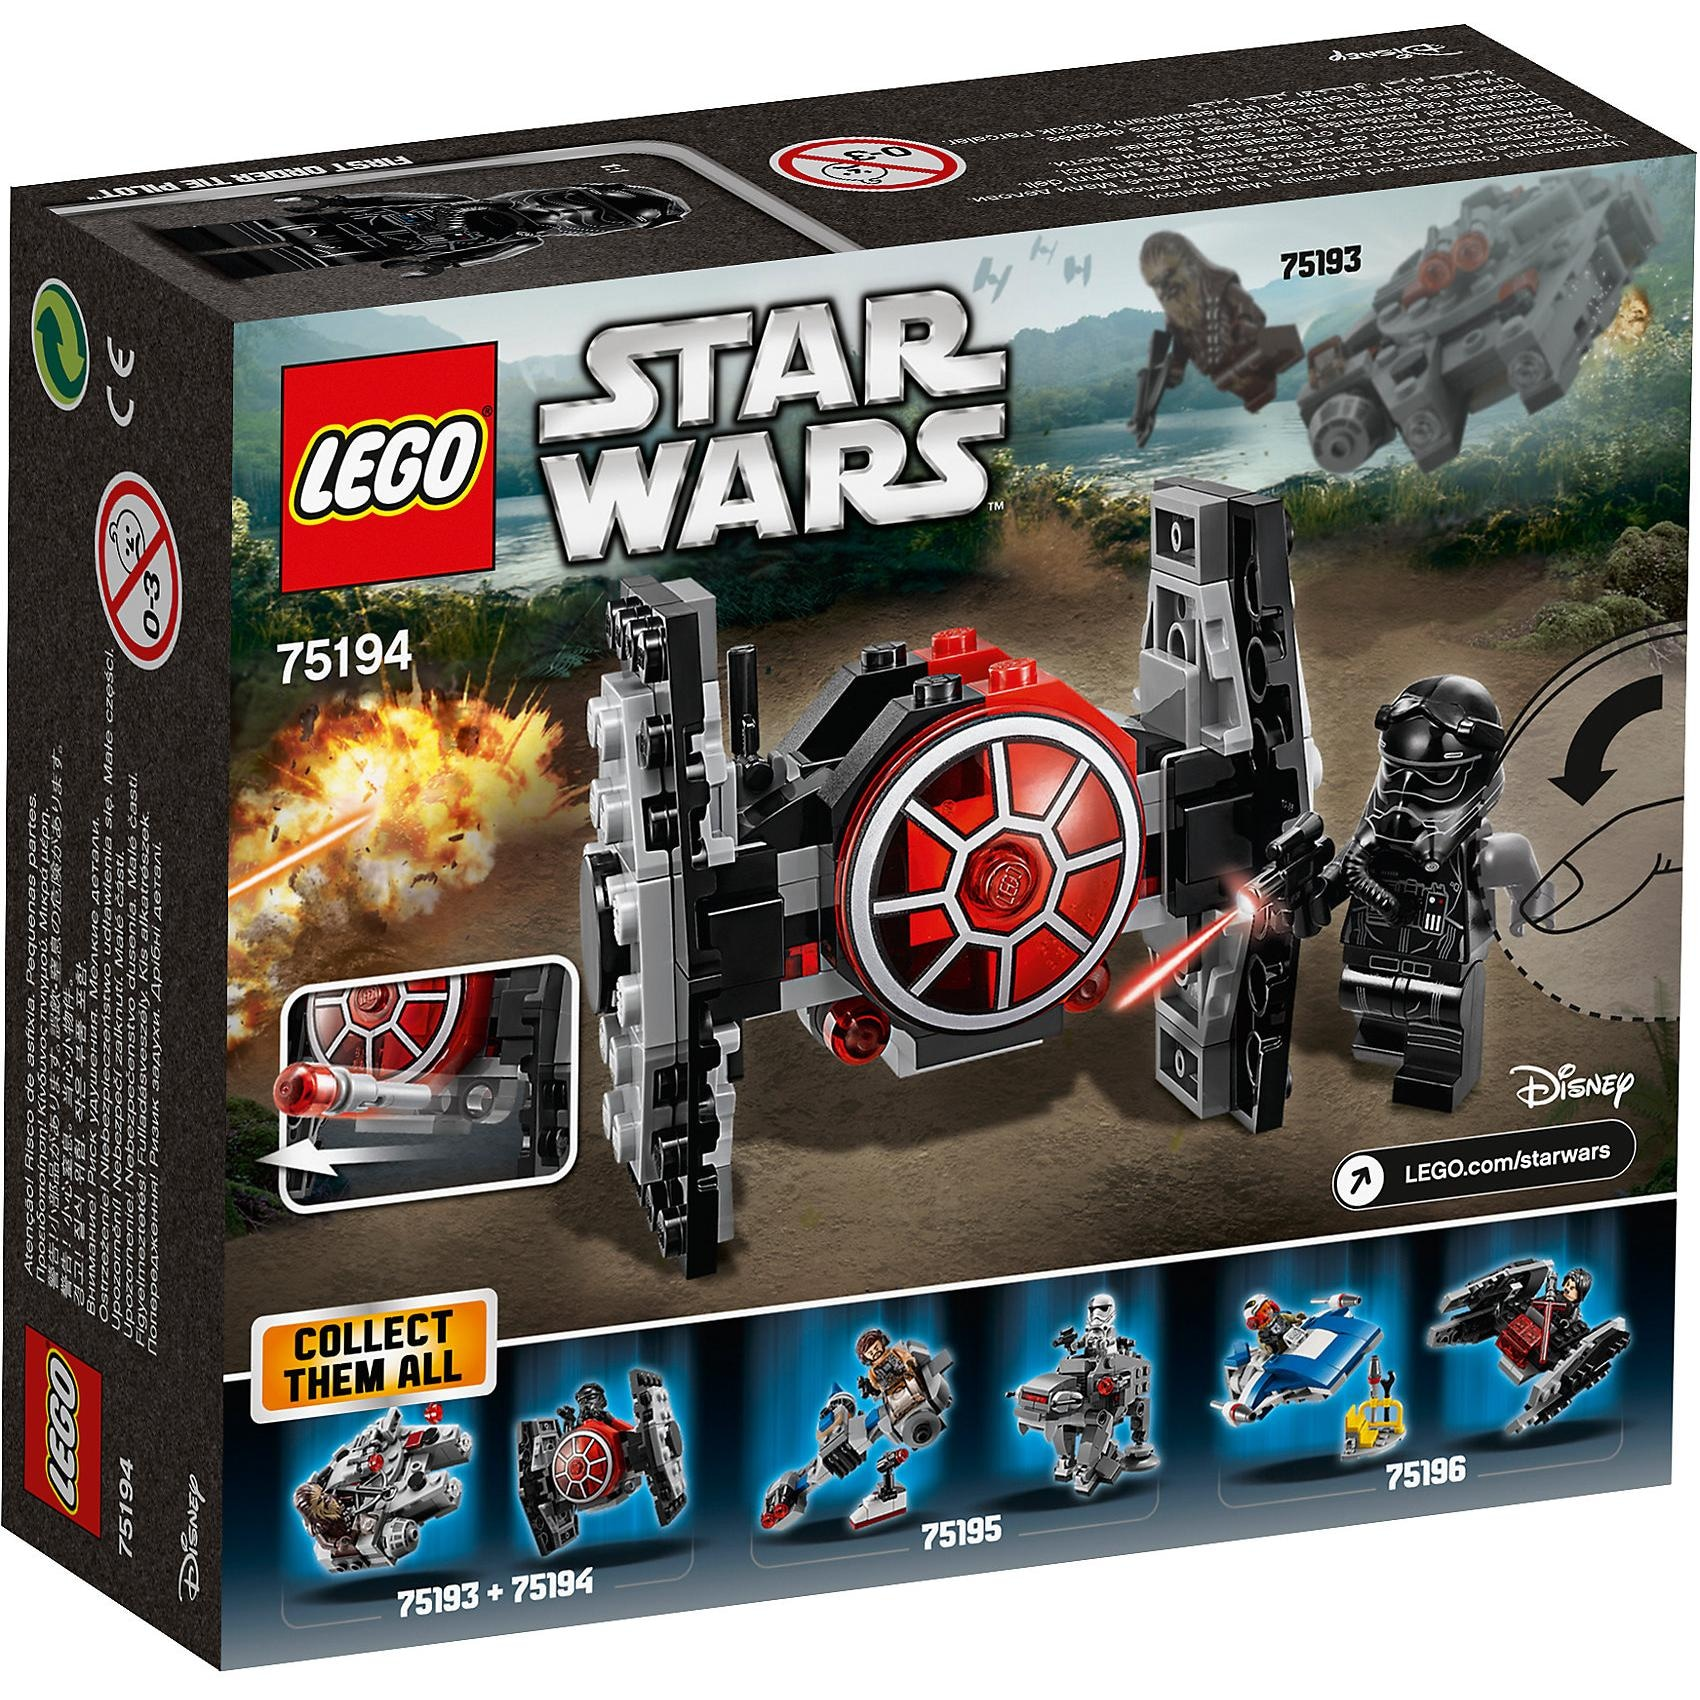 Lego Star Wars 75194 First Order Tie Fighter Microfighter